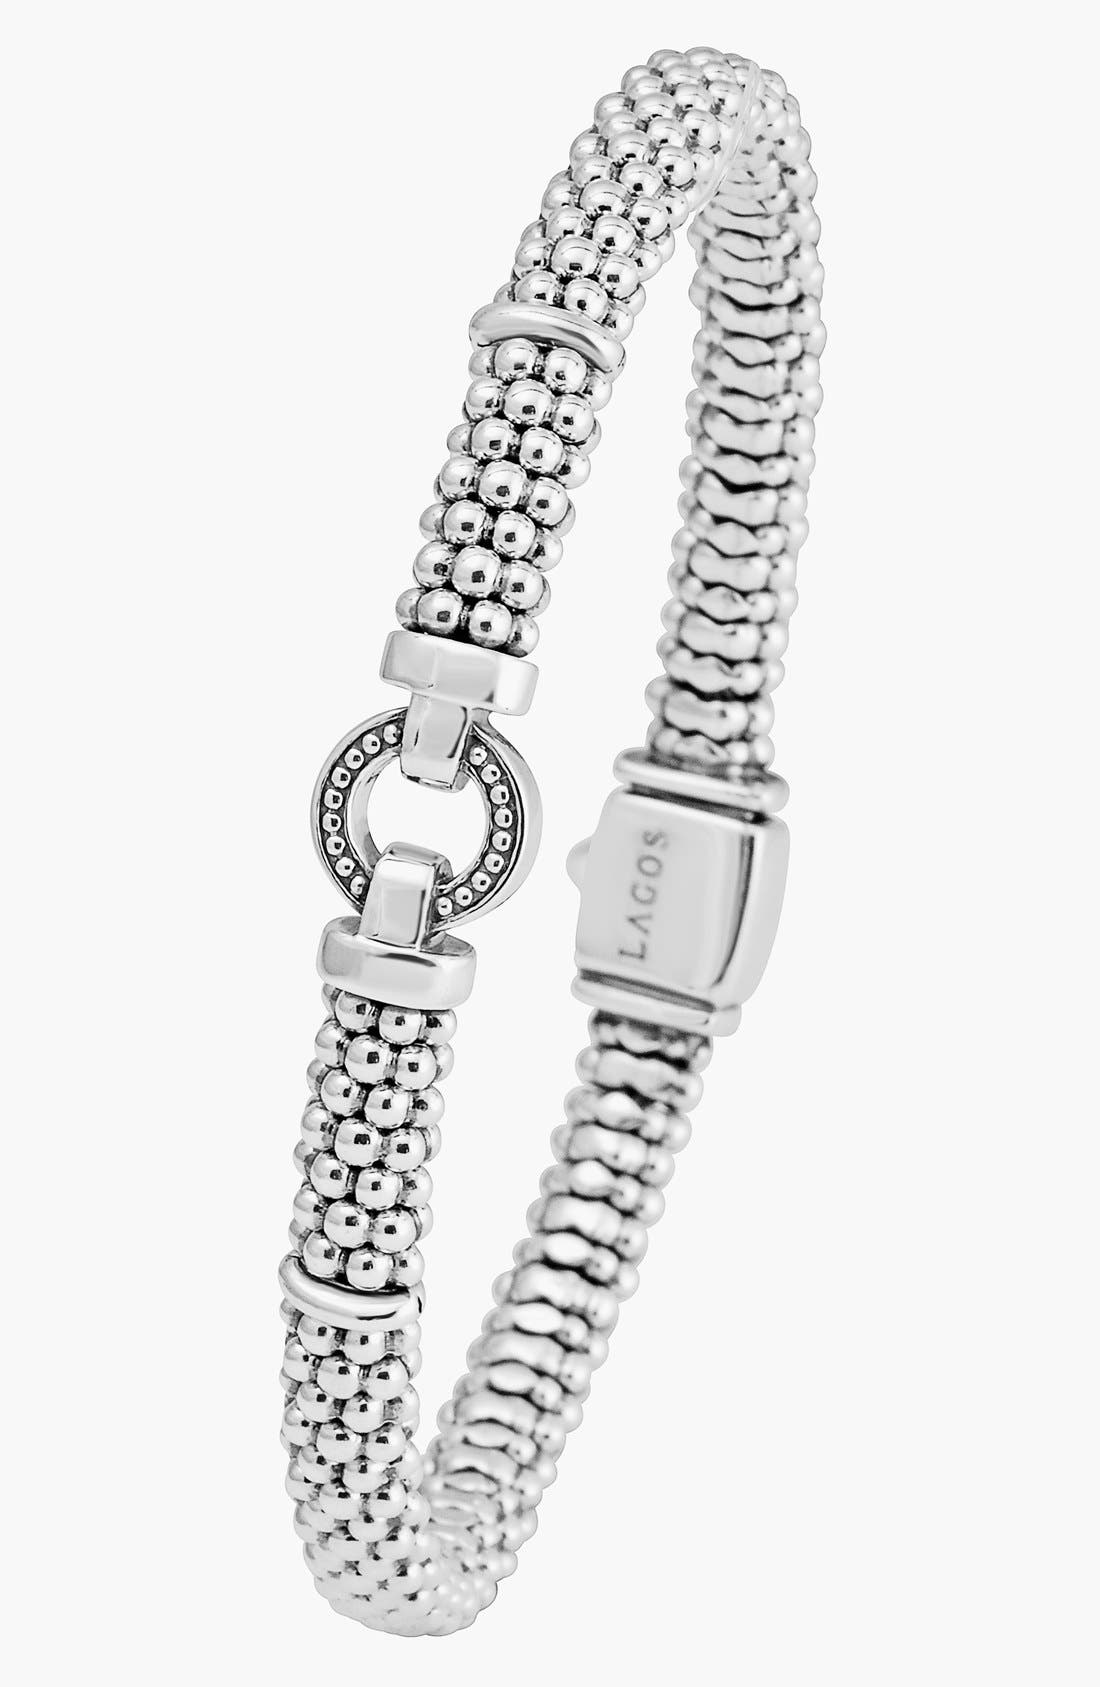 Enso Boxed Circle Station Caviar Rope Bracelet,                             Alternate thumbnail 9, color,                             STERLING SILVER